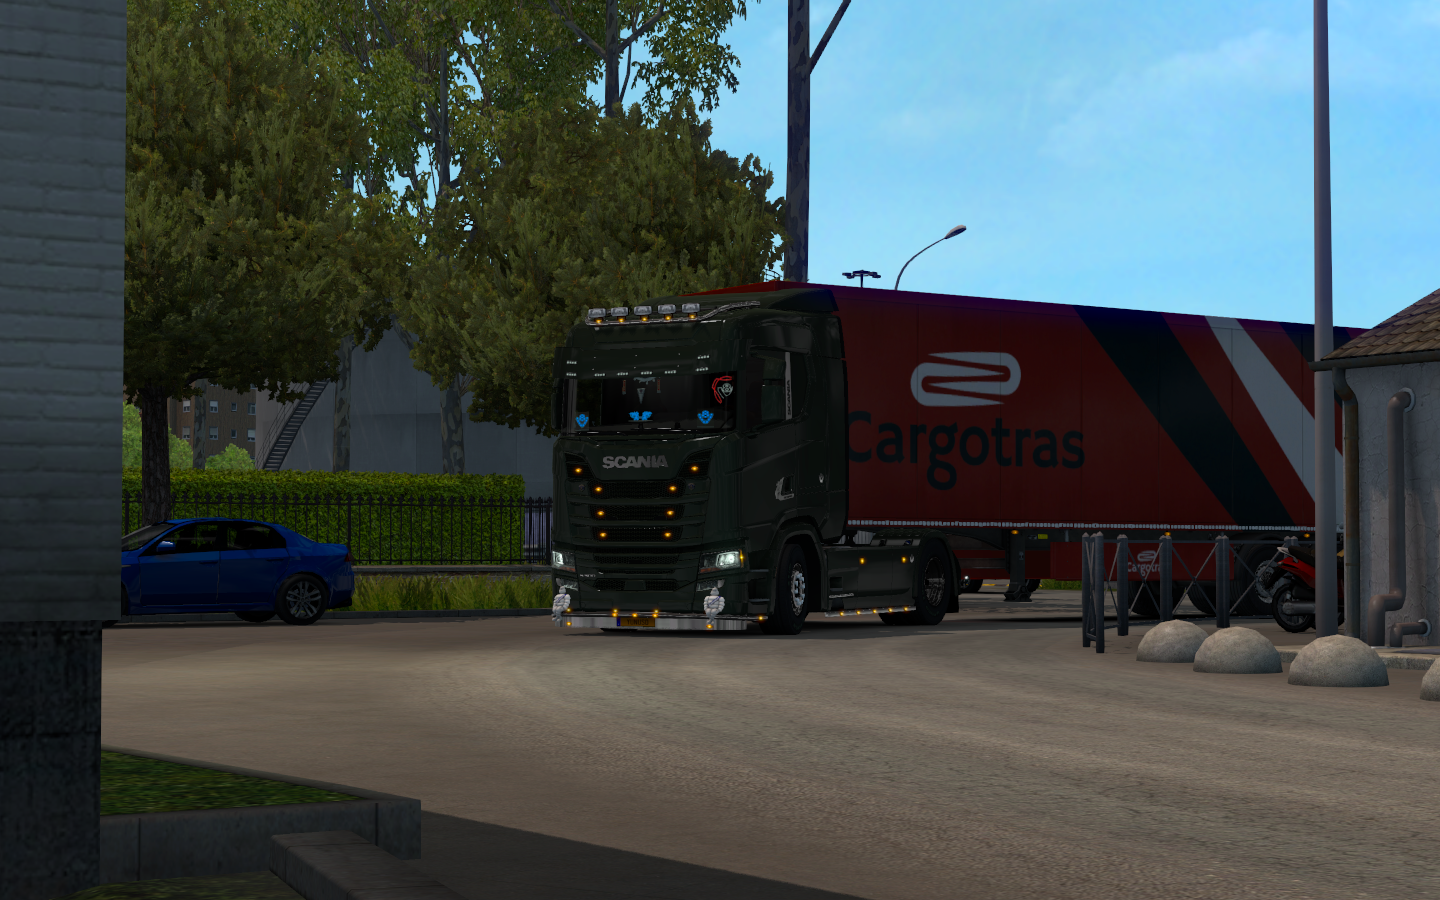 ets2_20190605_112137_00.png